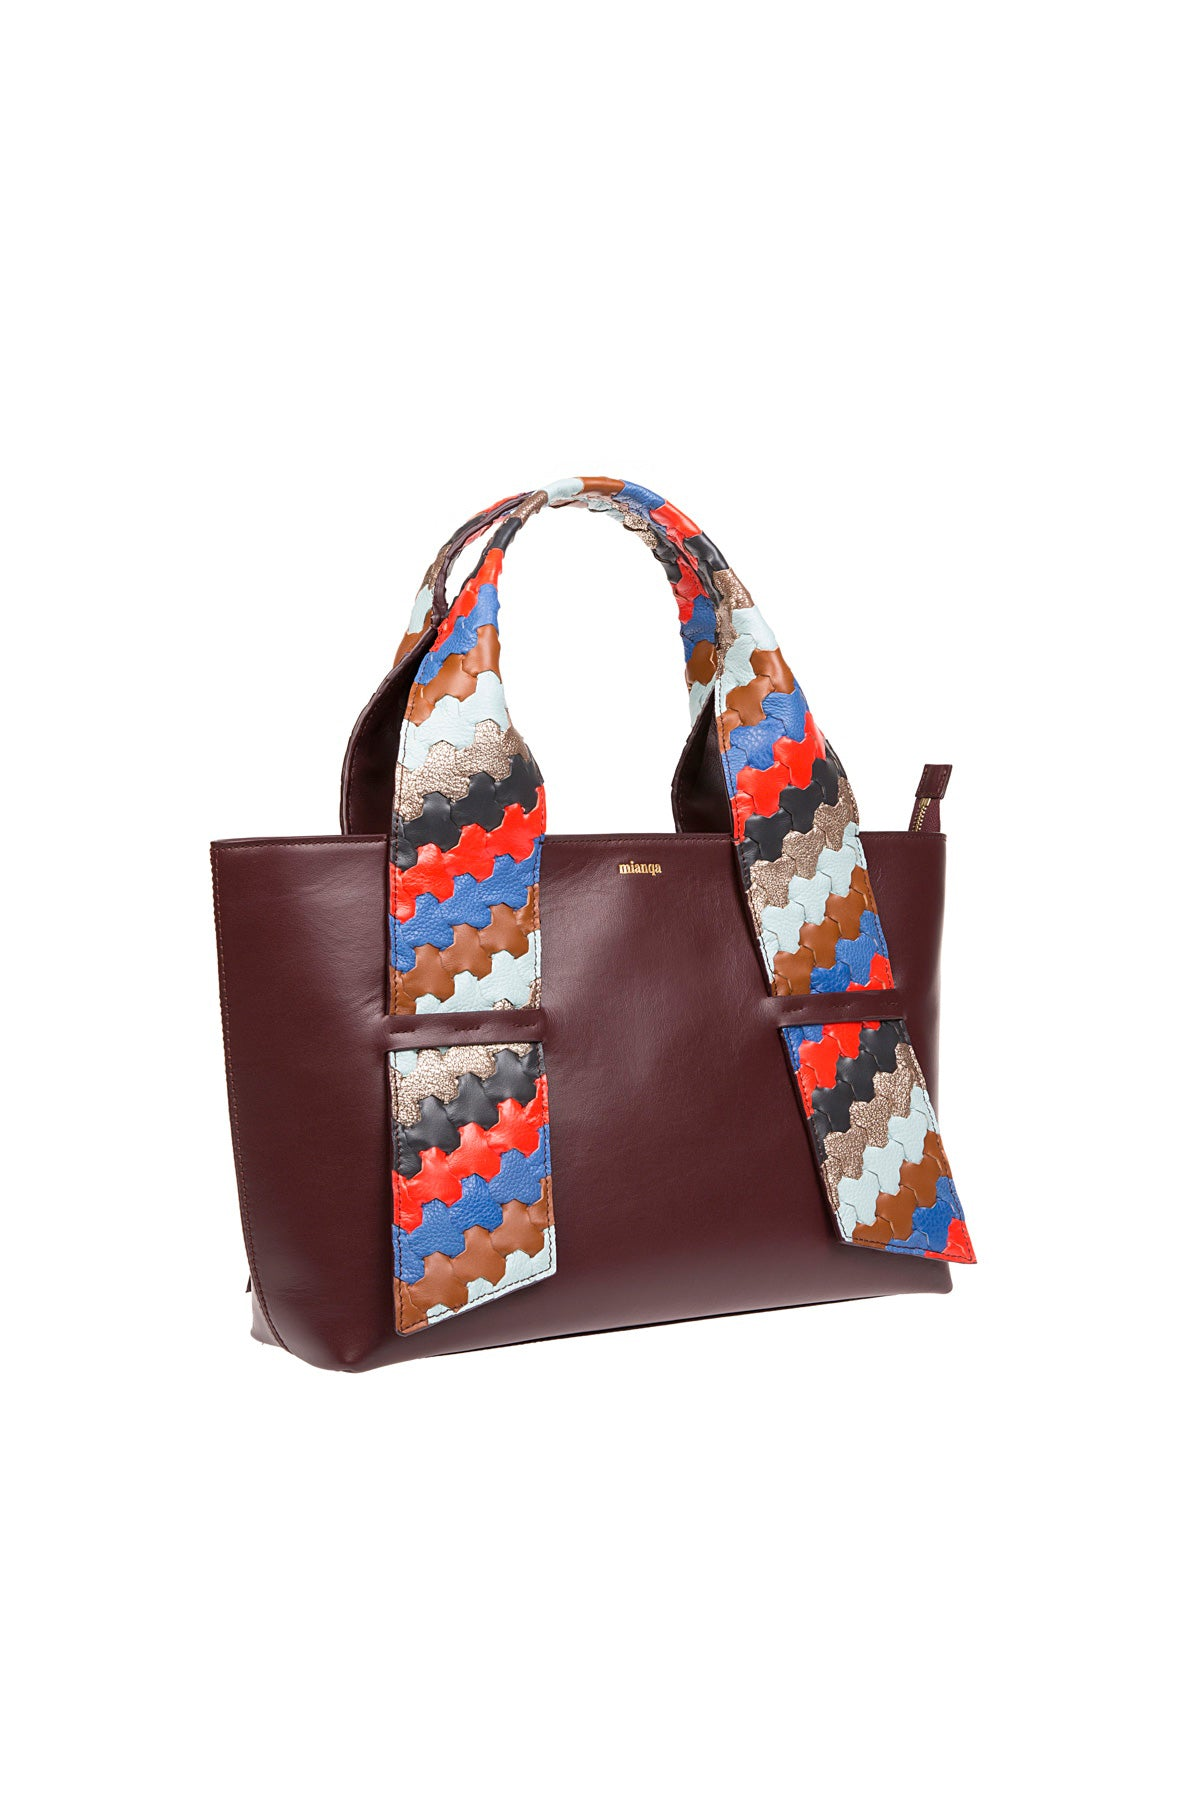 A D I L E | Leather Tote Bag Bordeaux